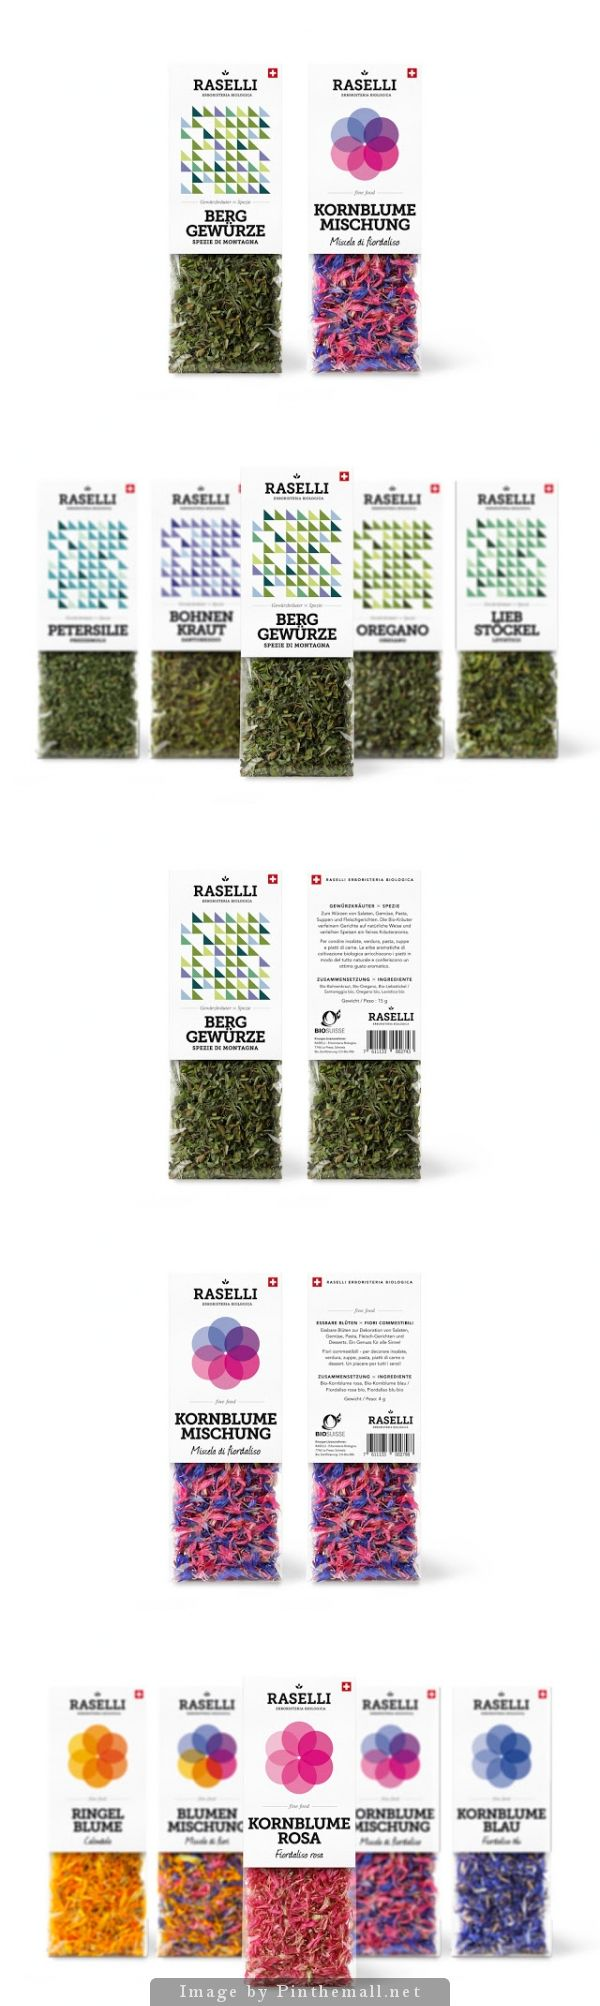 Beautiful packaging on Raselli Organic Herbs & Blossoms by PlasmaDesign Studio PD